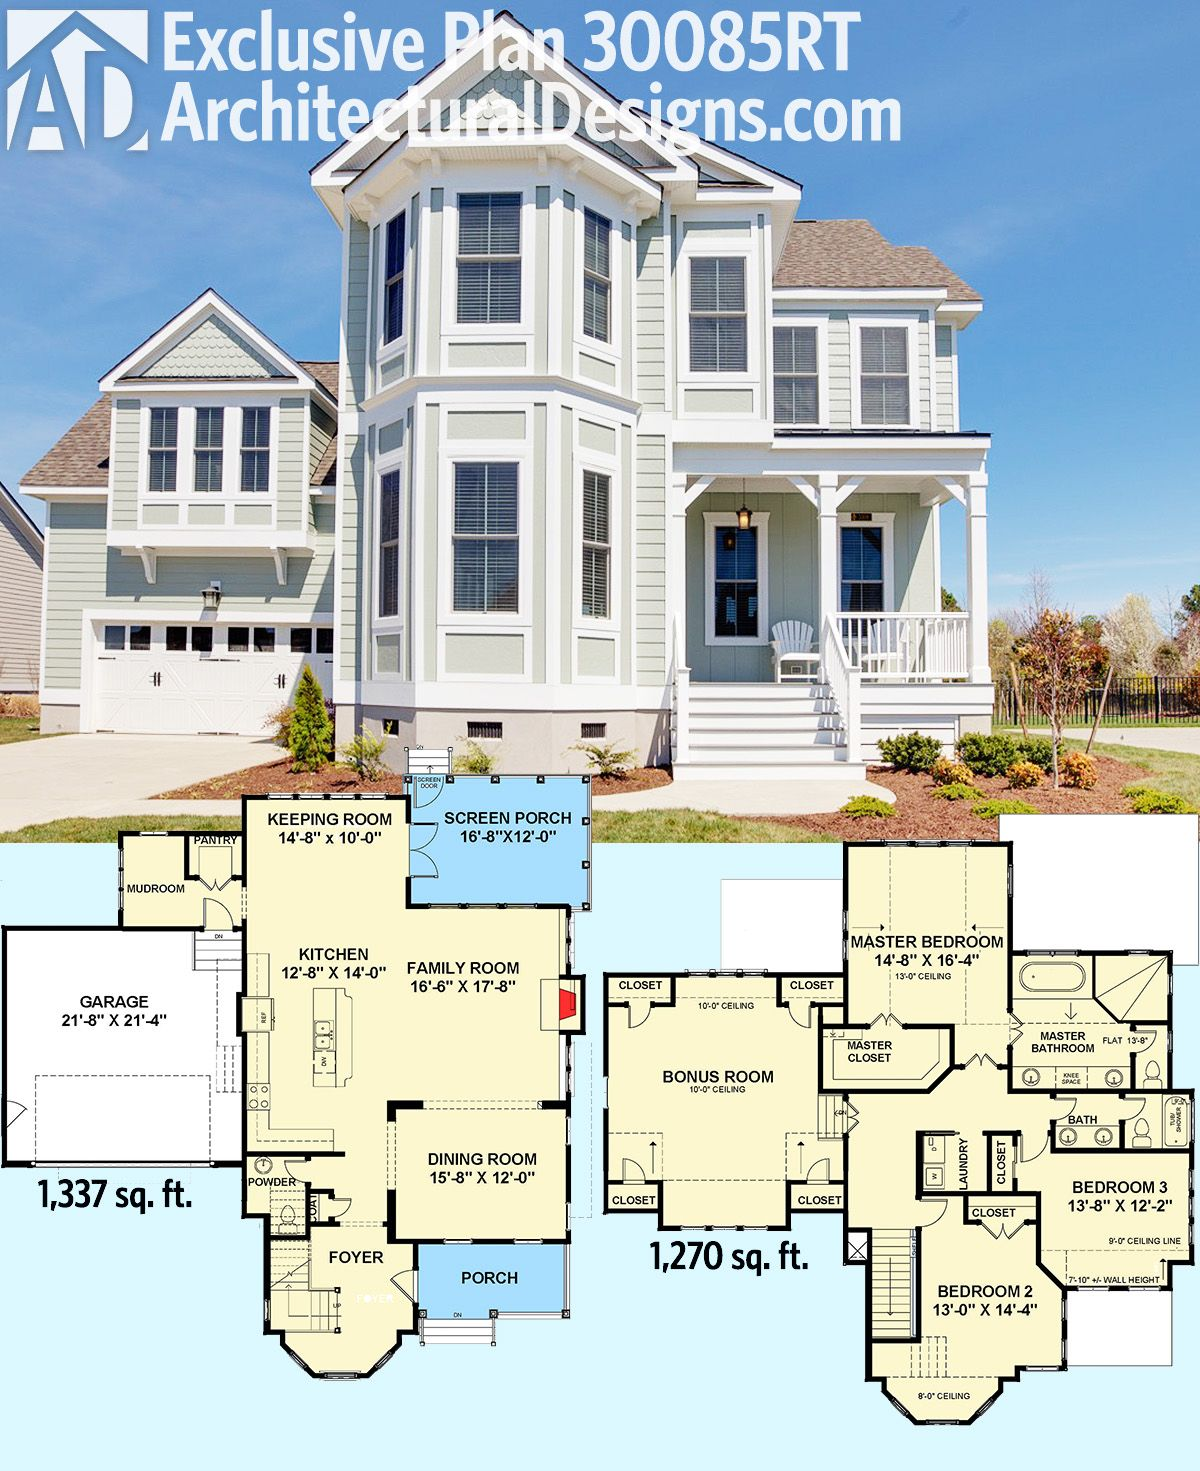 Plan 30085rt exclusive victorian with bay windows for Beach house plans sims 3